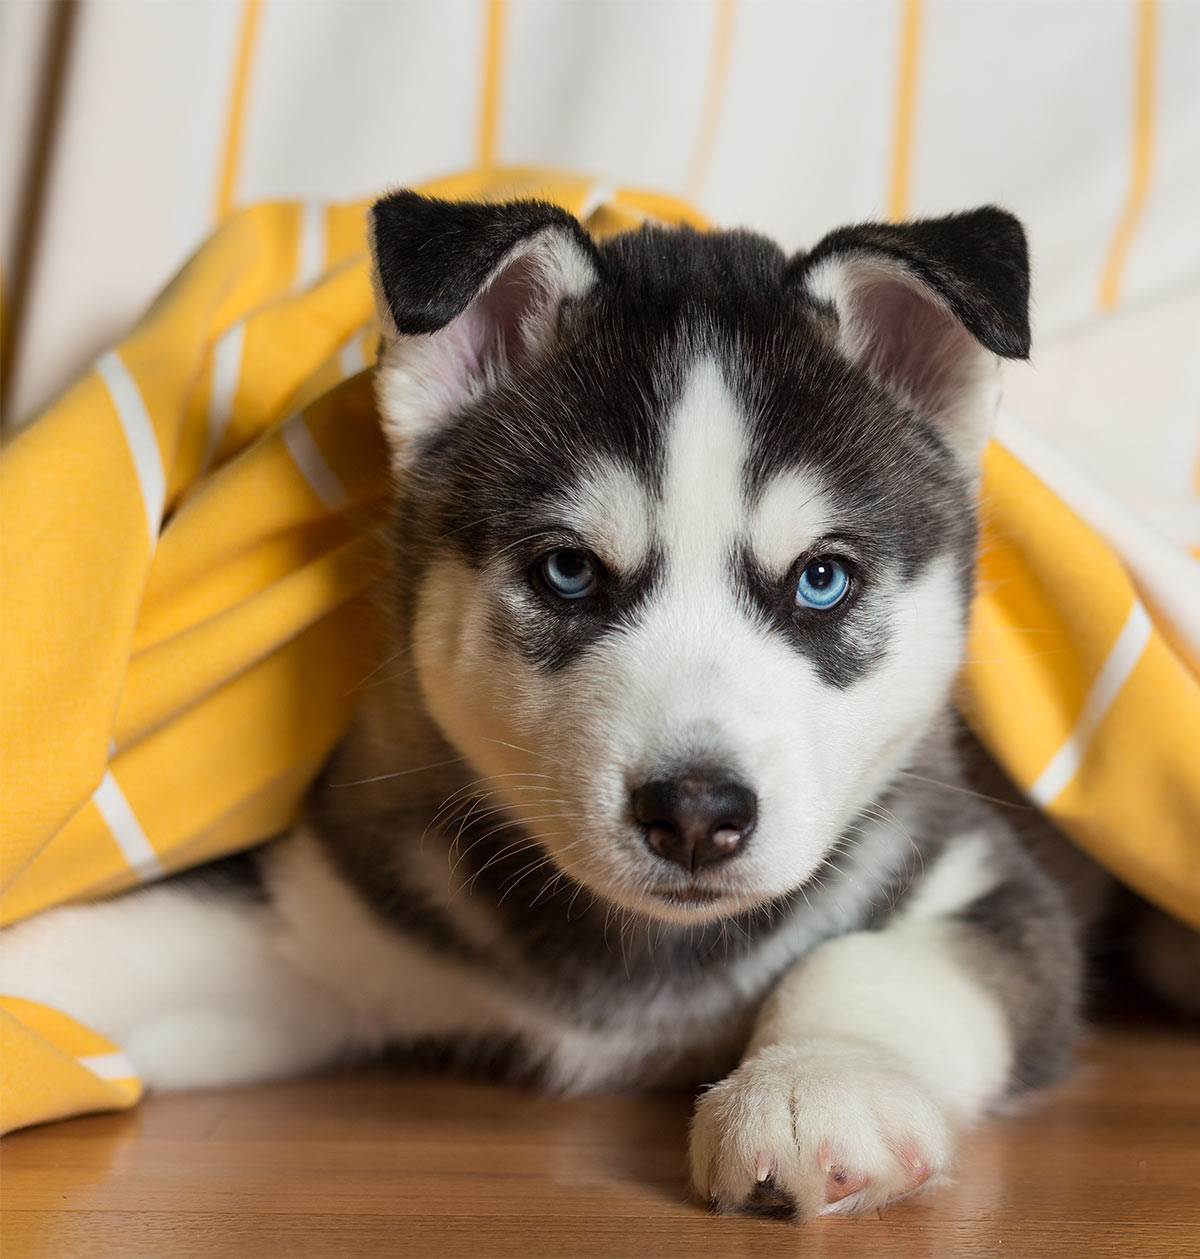 Pictures Of Huskies An Amazing Gallery Of Siberian And